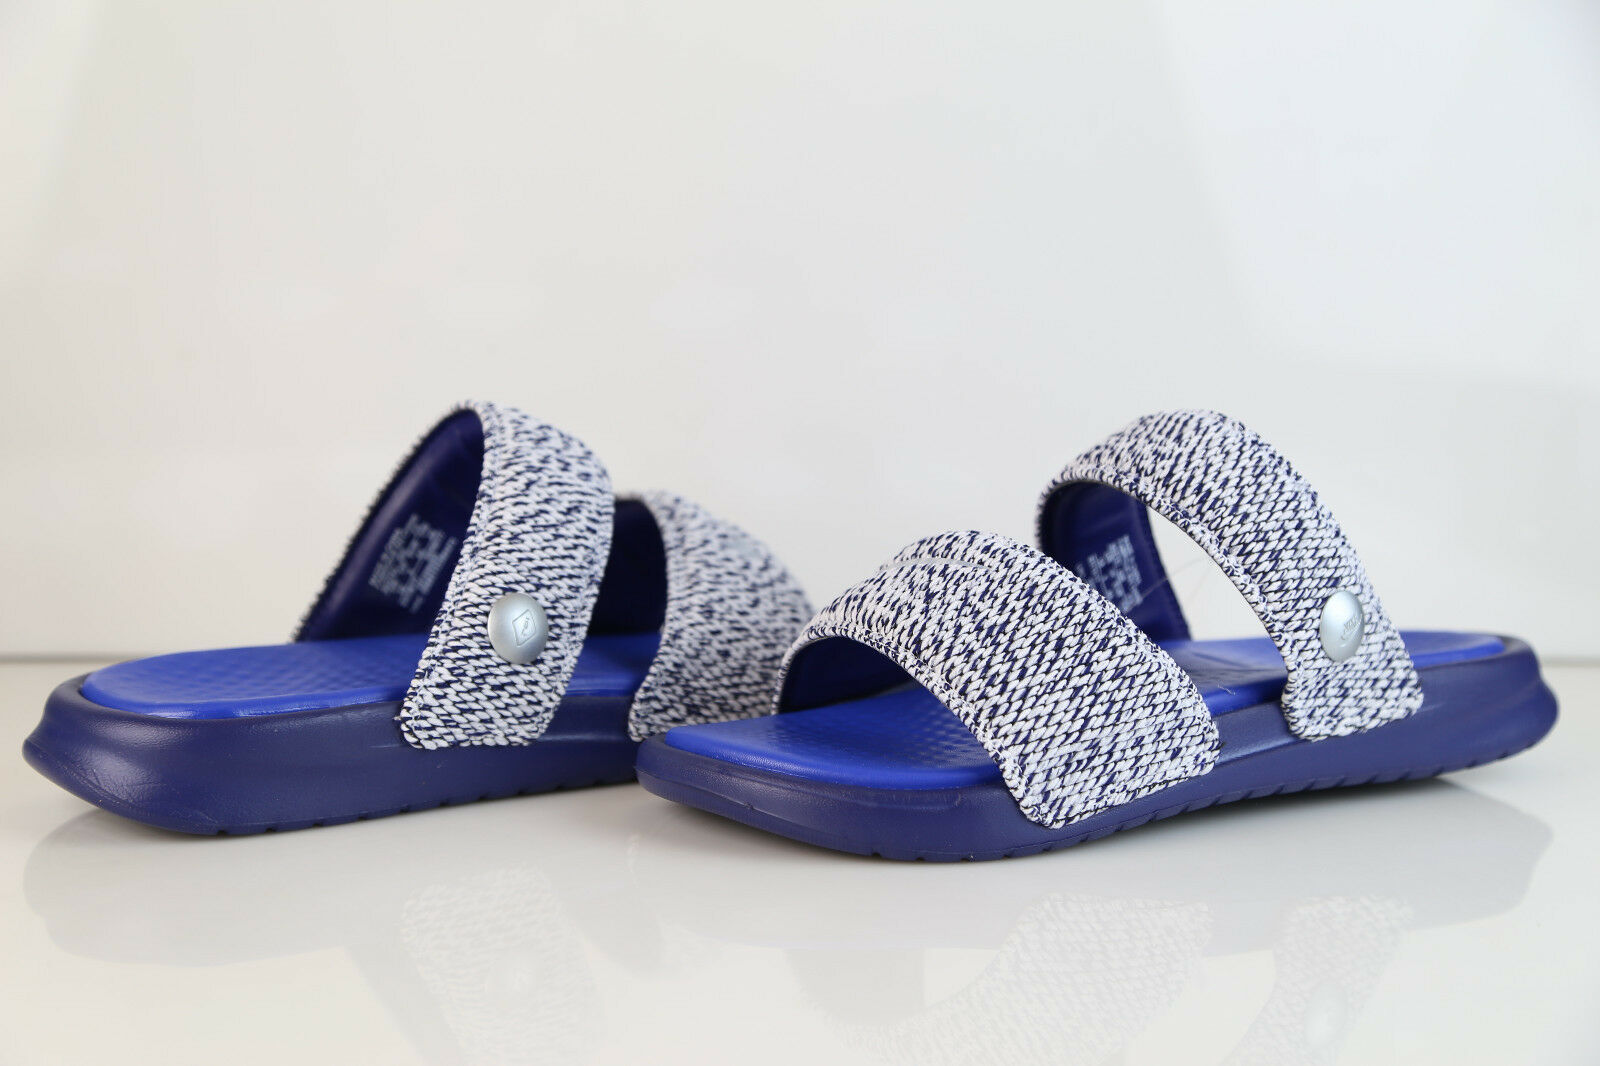 Nike Lab Benassi Pigalle Duo Ultra Slide  Loal blu Royal bianca 902783 -400 8 -12  all'ingrosso a buon mercato